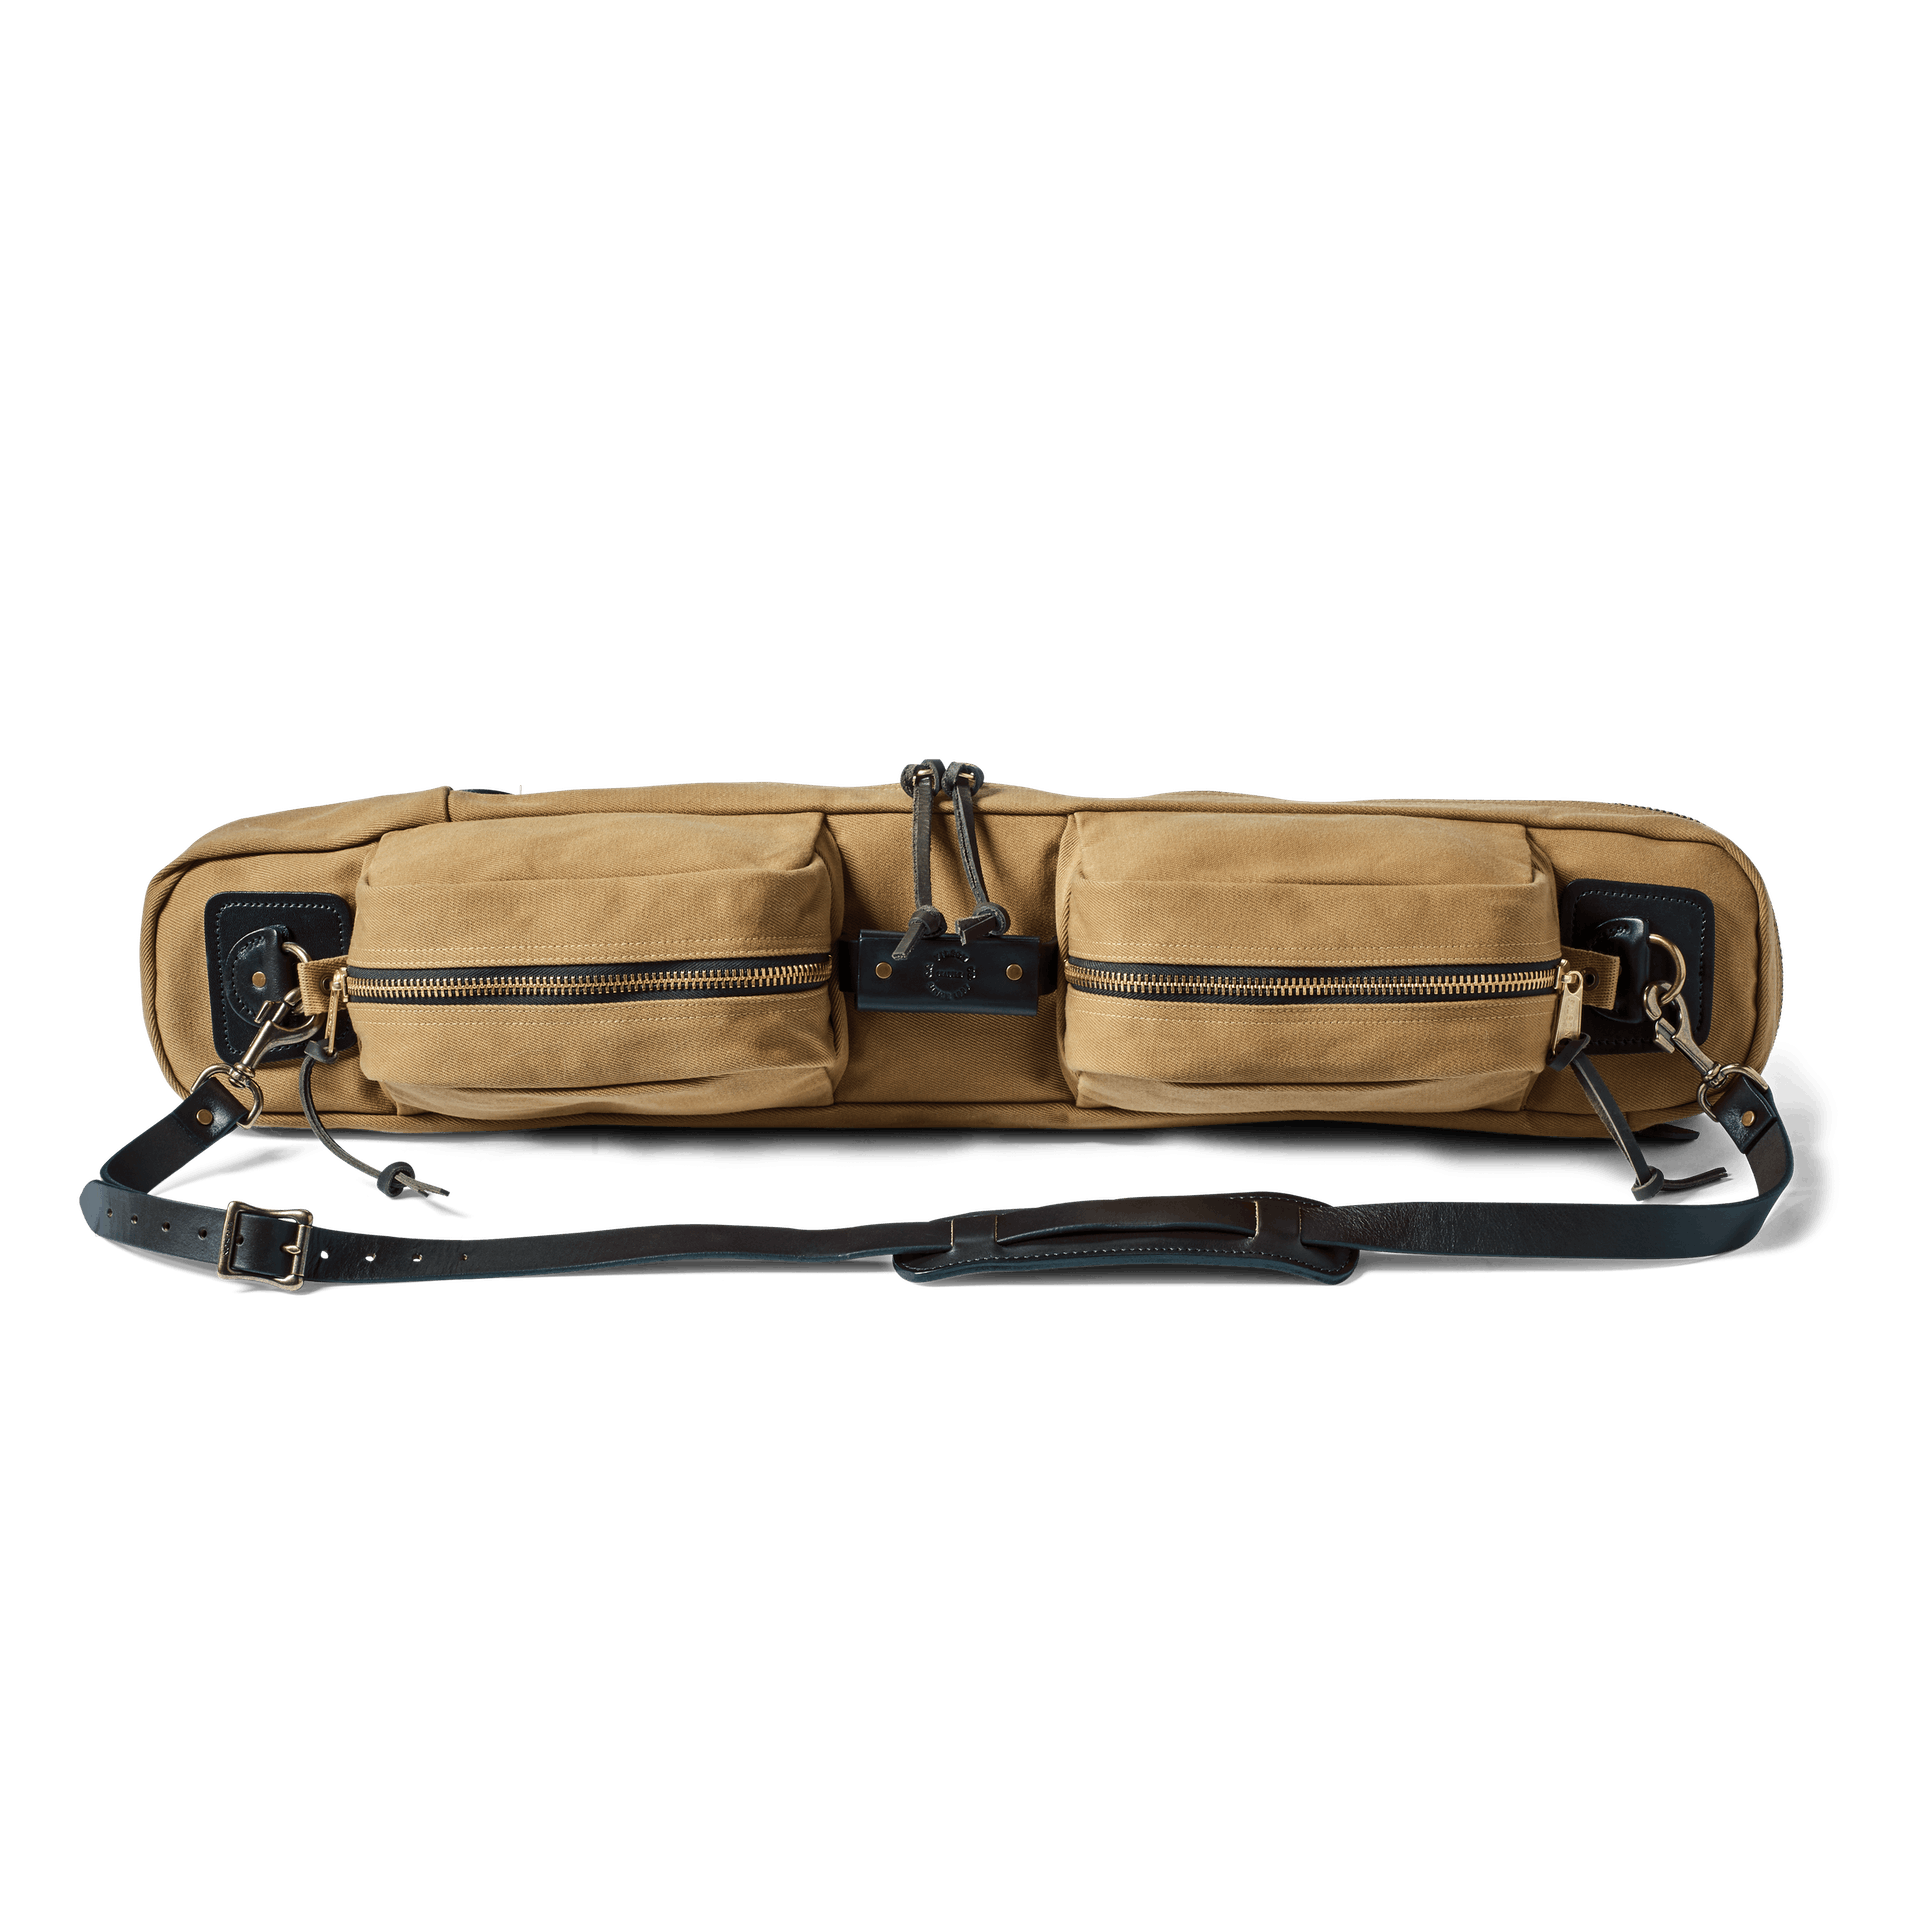 Sleeve Cotton Fishing for Most Fishing Rod Cloth Protector Case Pole Bag Pole